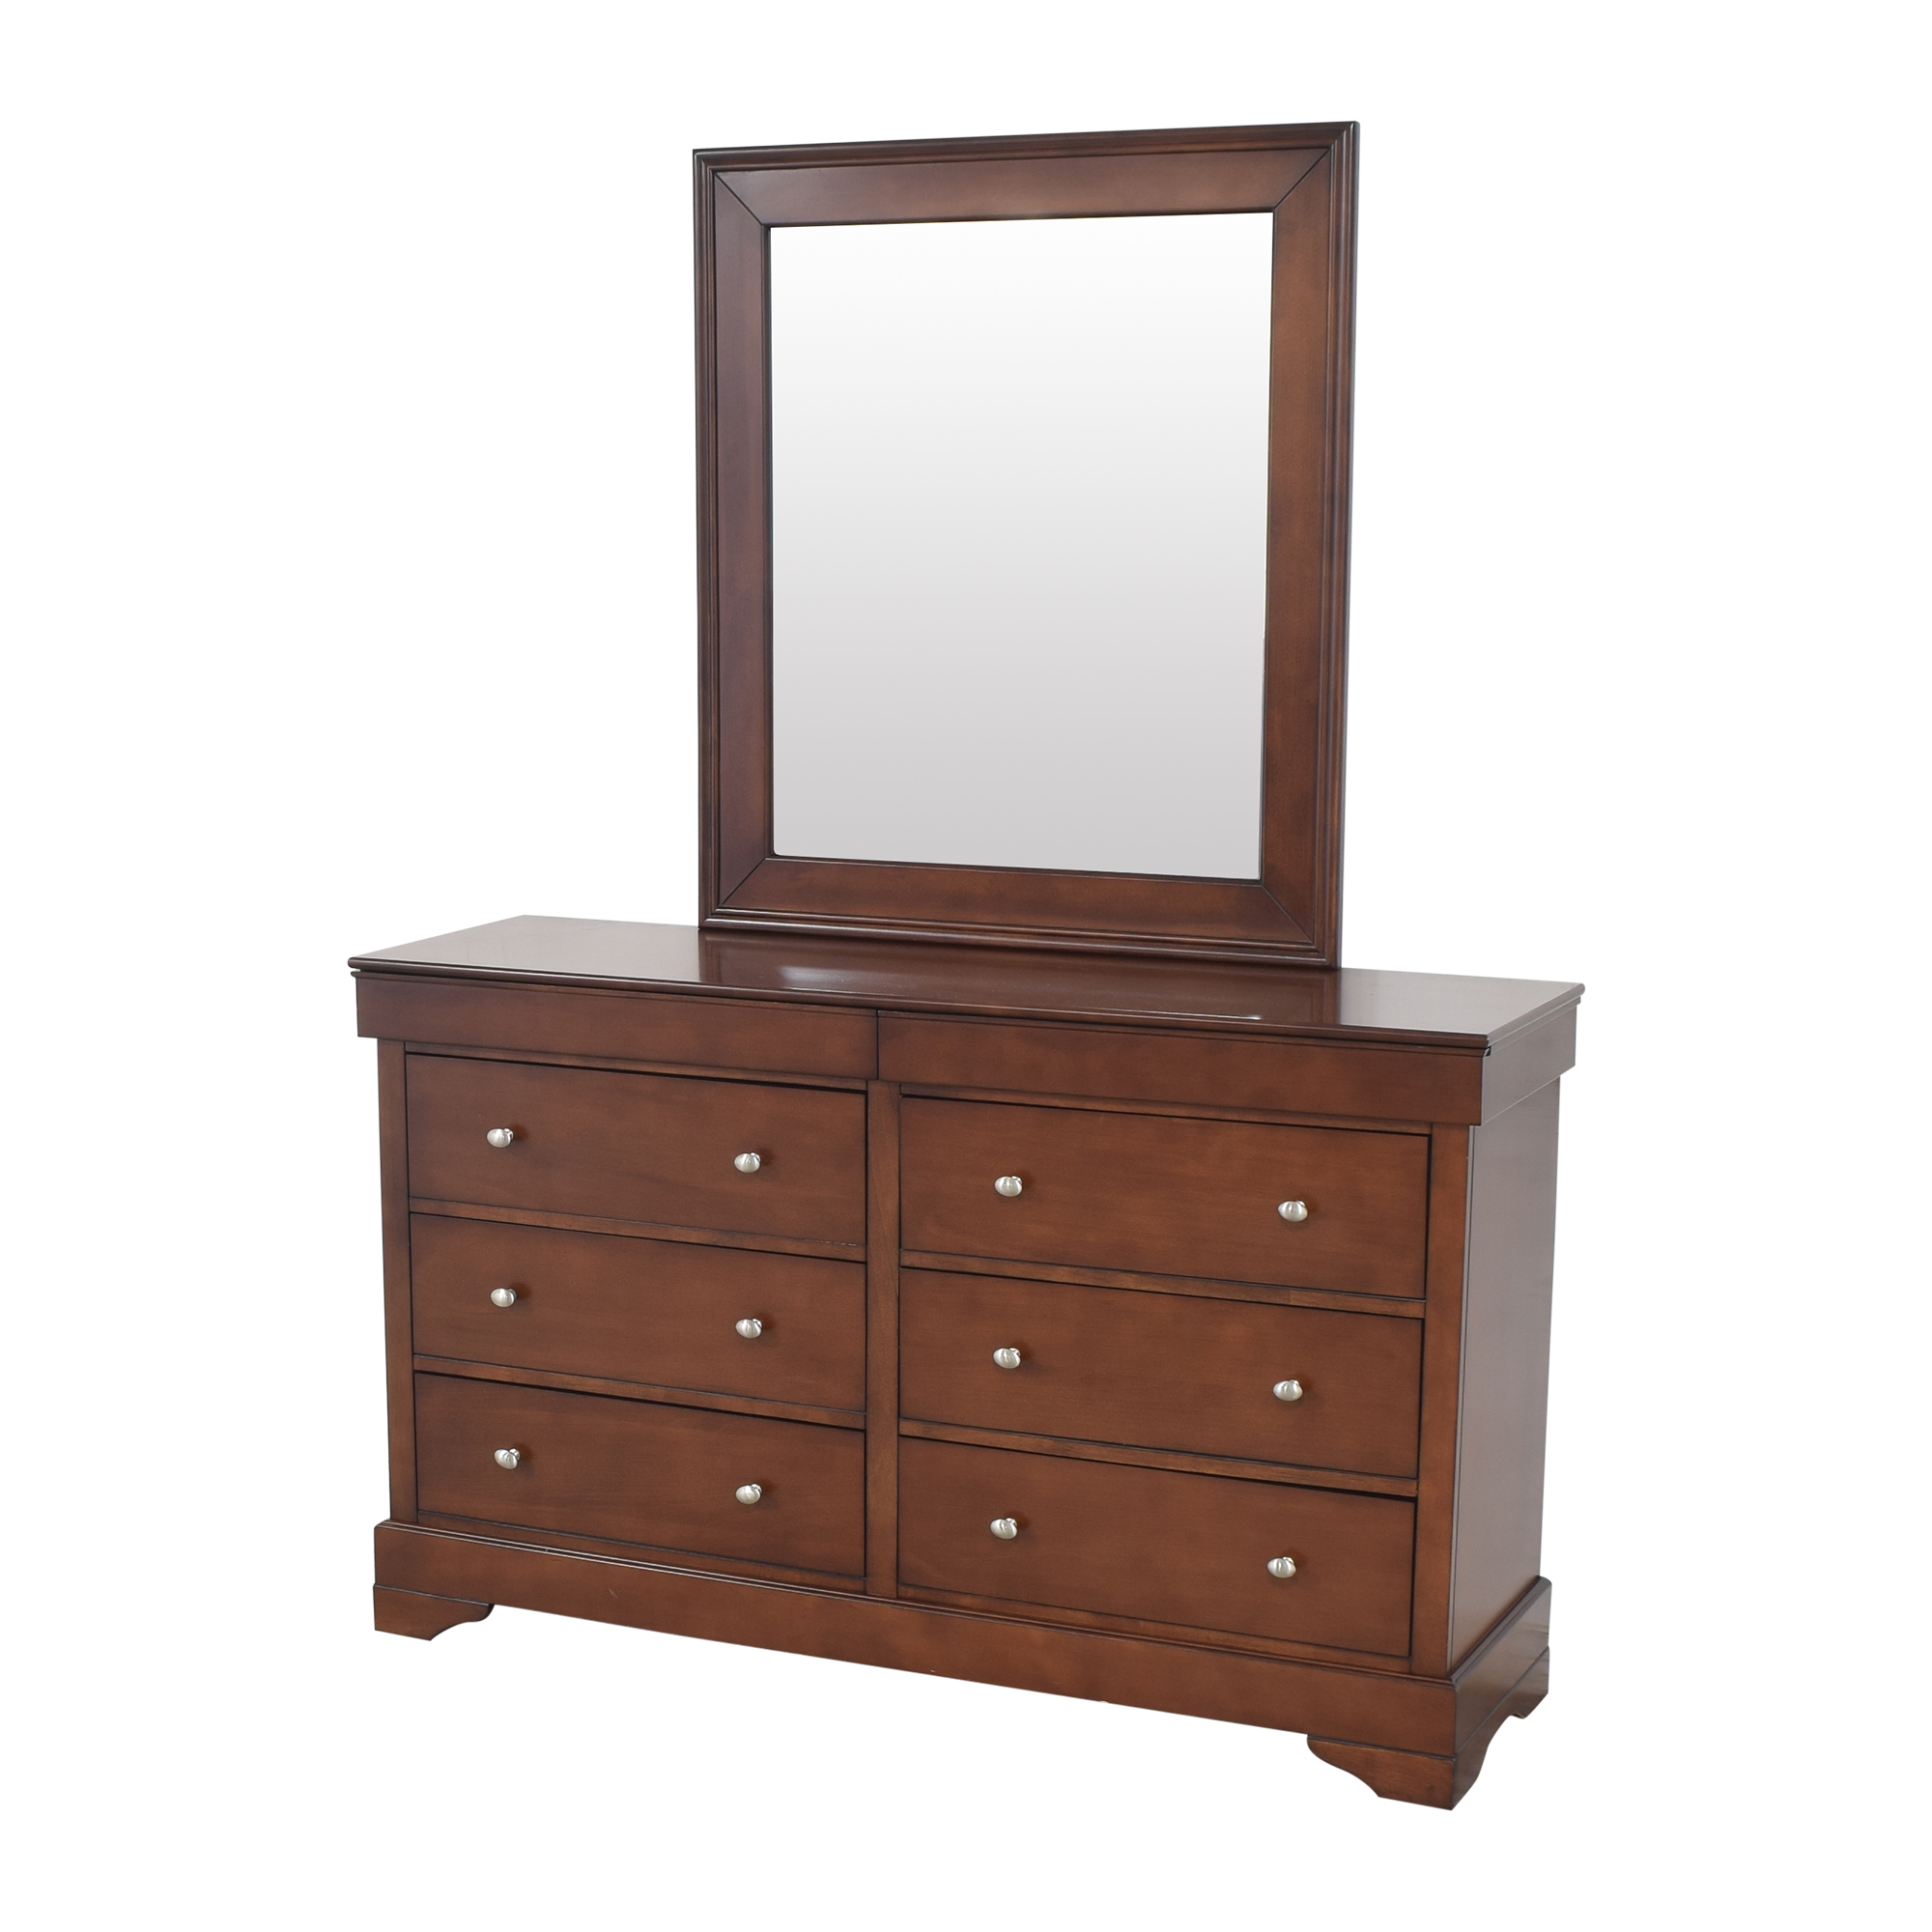 Lifestyle Solutions Lifestyle Solutions Double Dresser with Mirror dimensions